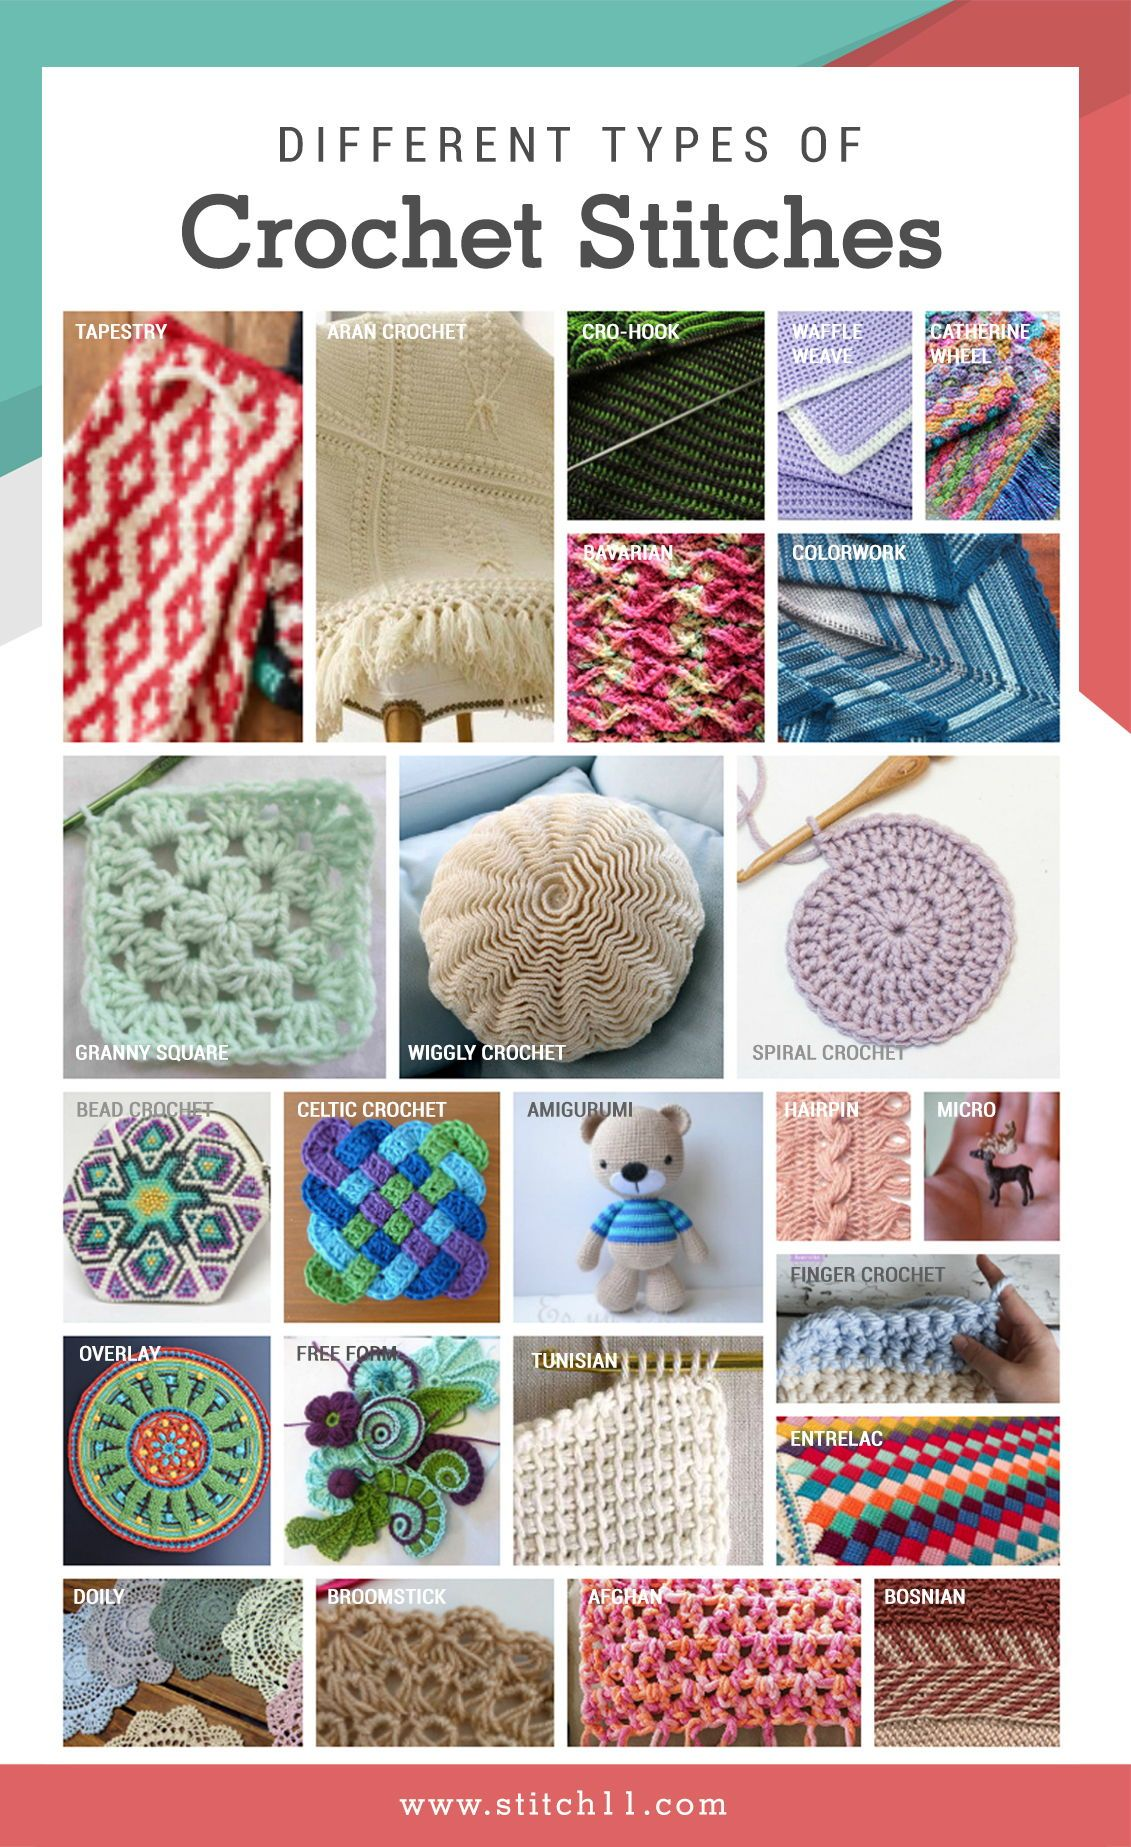 Different Types Of Crochet Stitches Infographic Stitch 11com Is